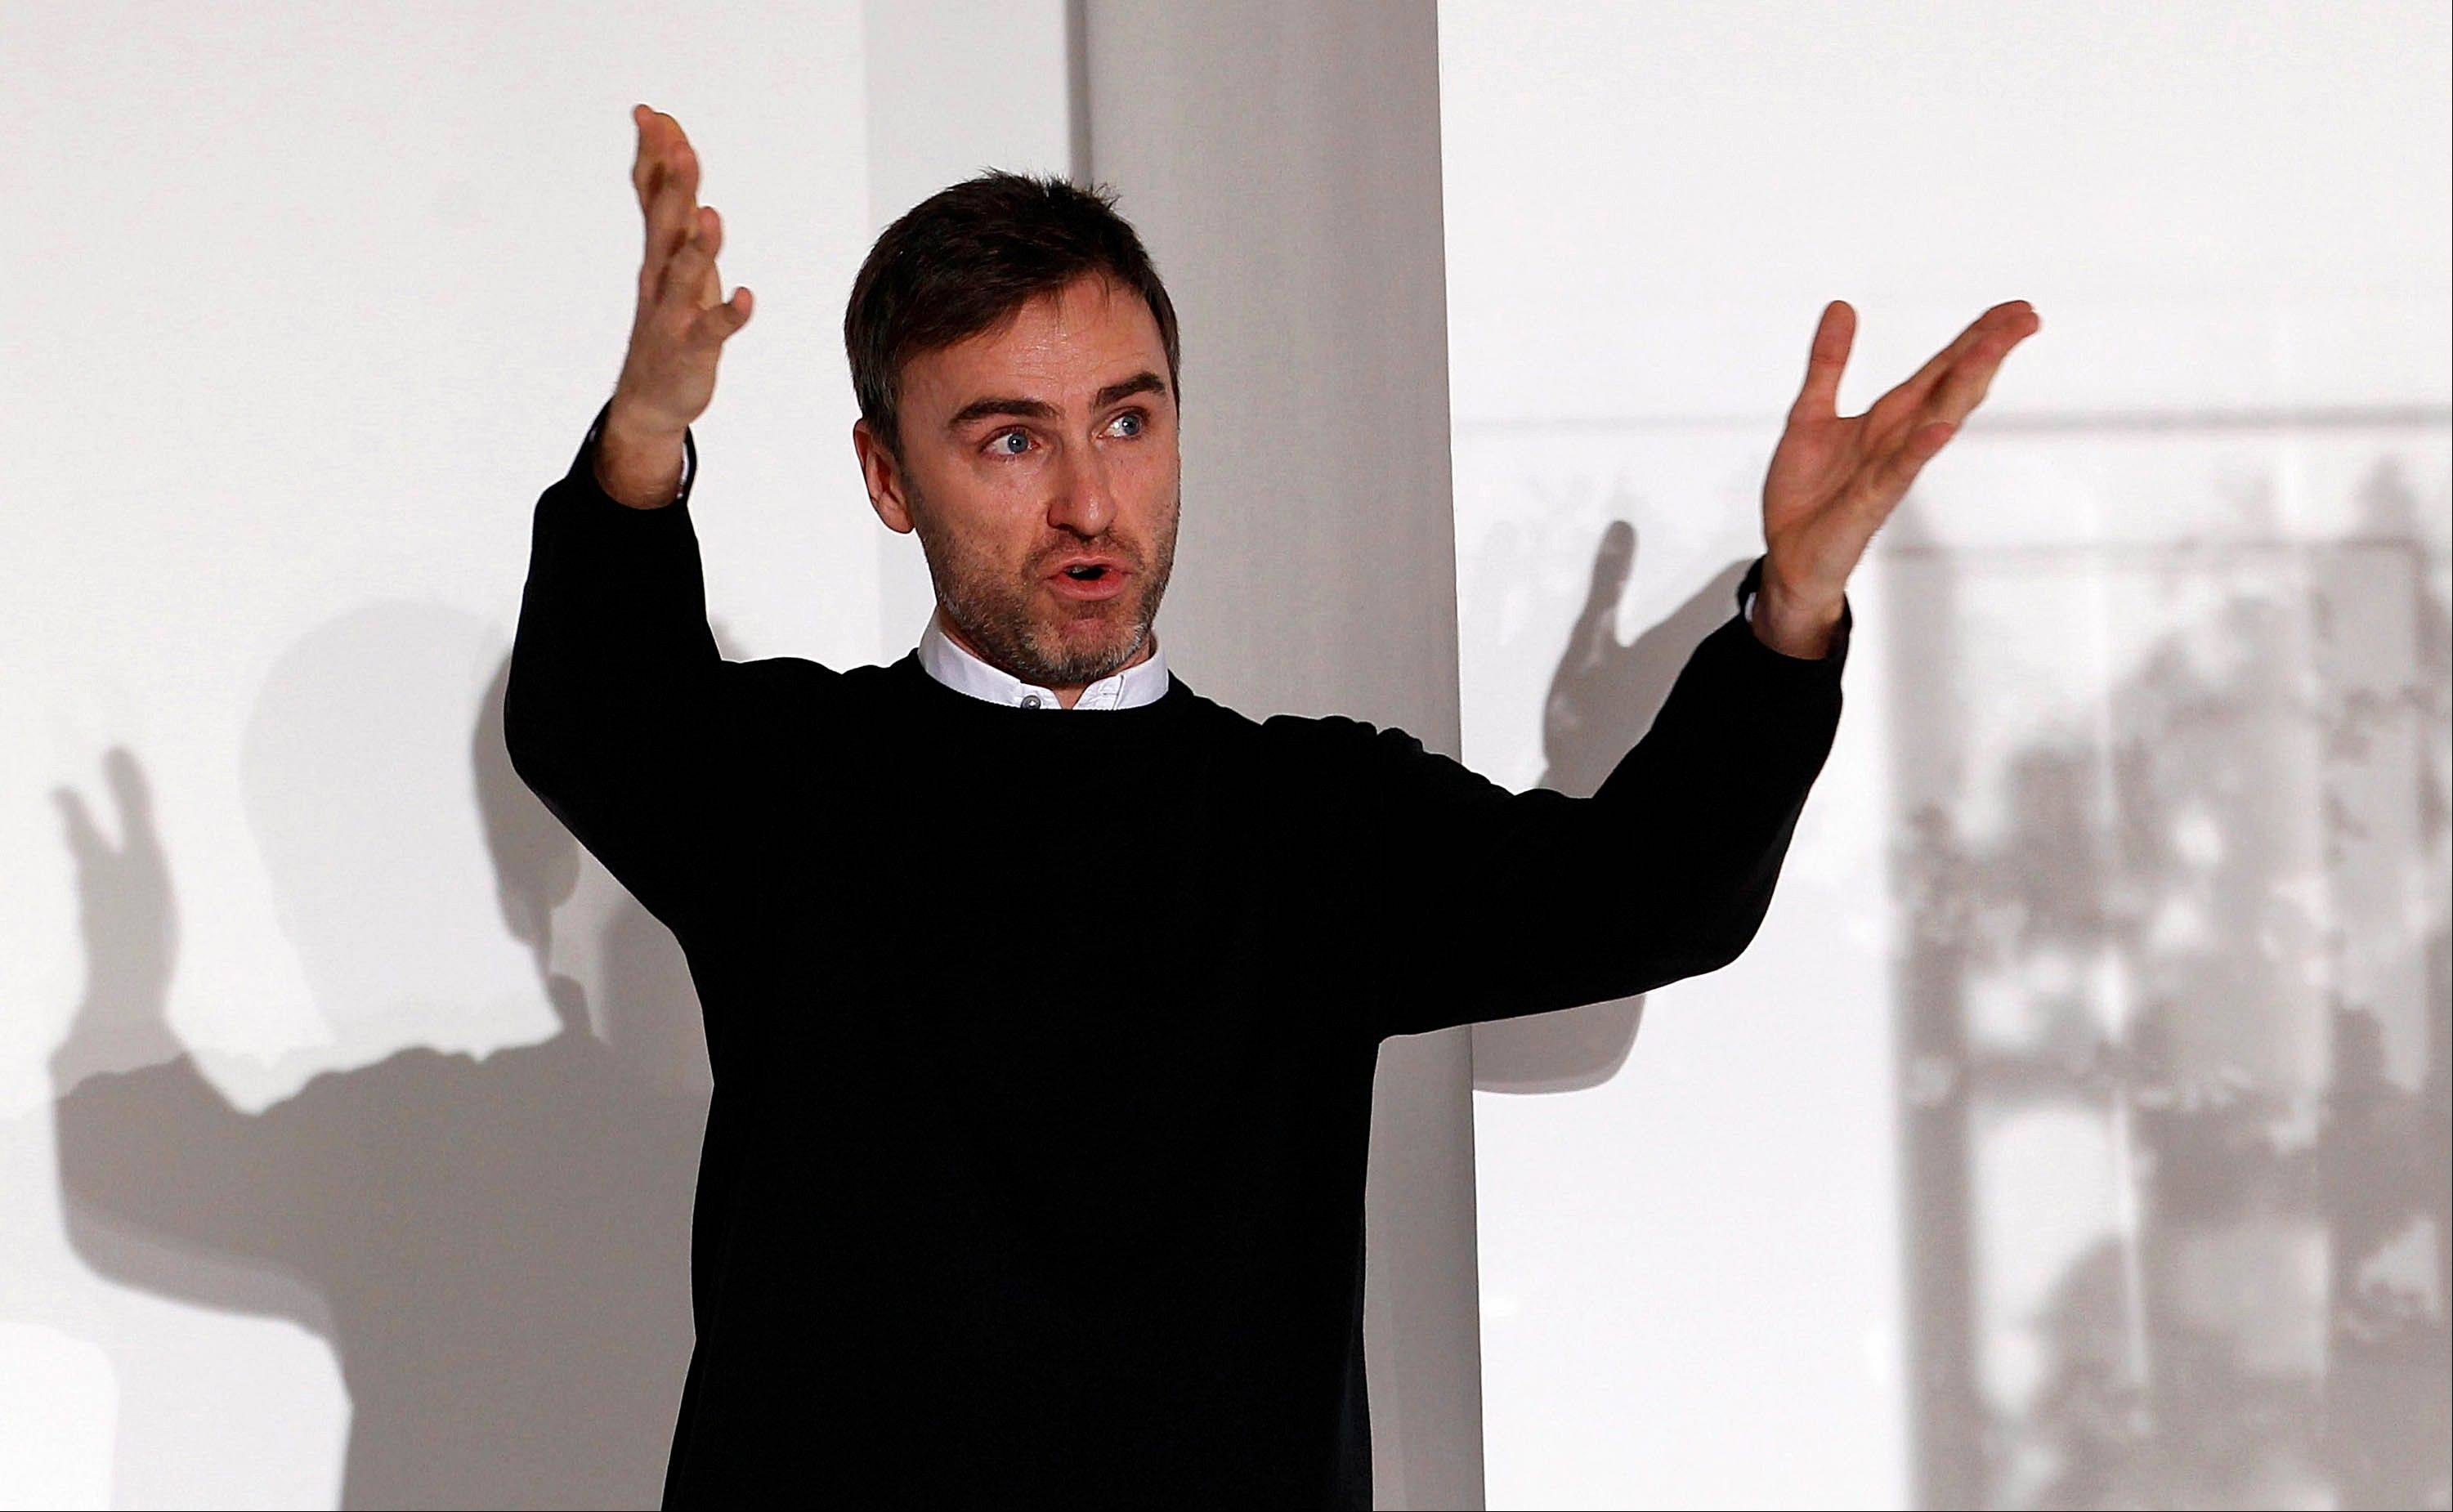 This Sept. 25, 2011 file photo shows Belgian designer Raf Simons at the end of the Jil Sander Spring/Summer 2012 women's collection in Milan. Simons is the Creative Director at Christian Dior.